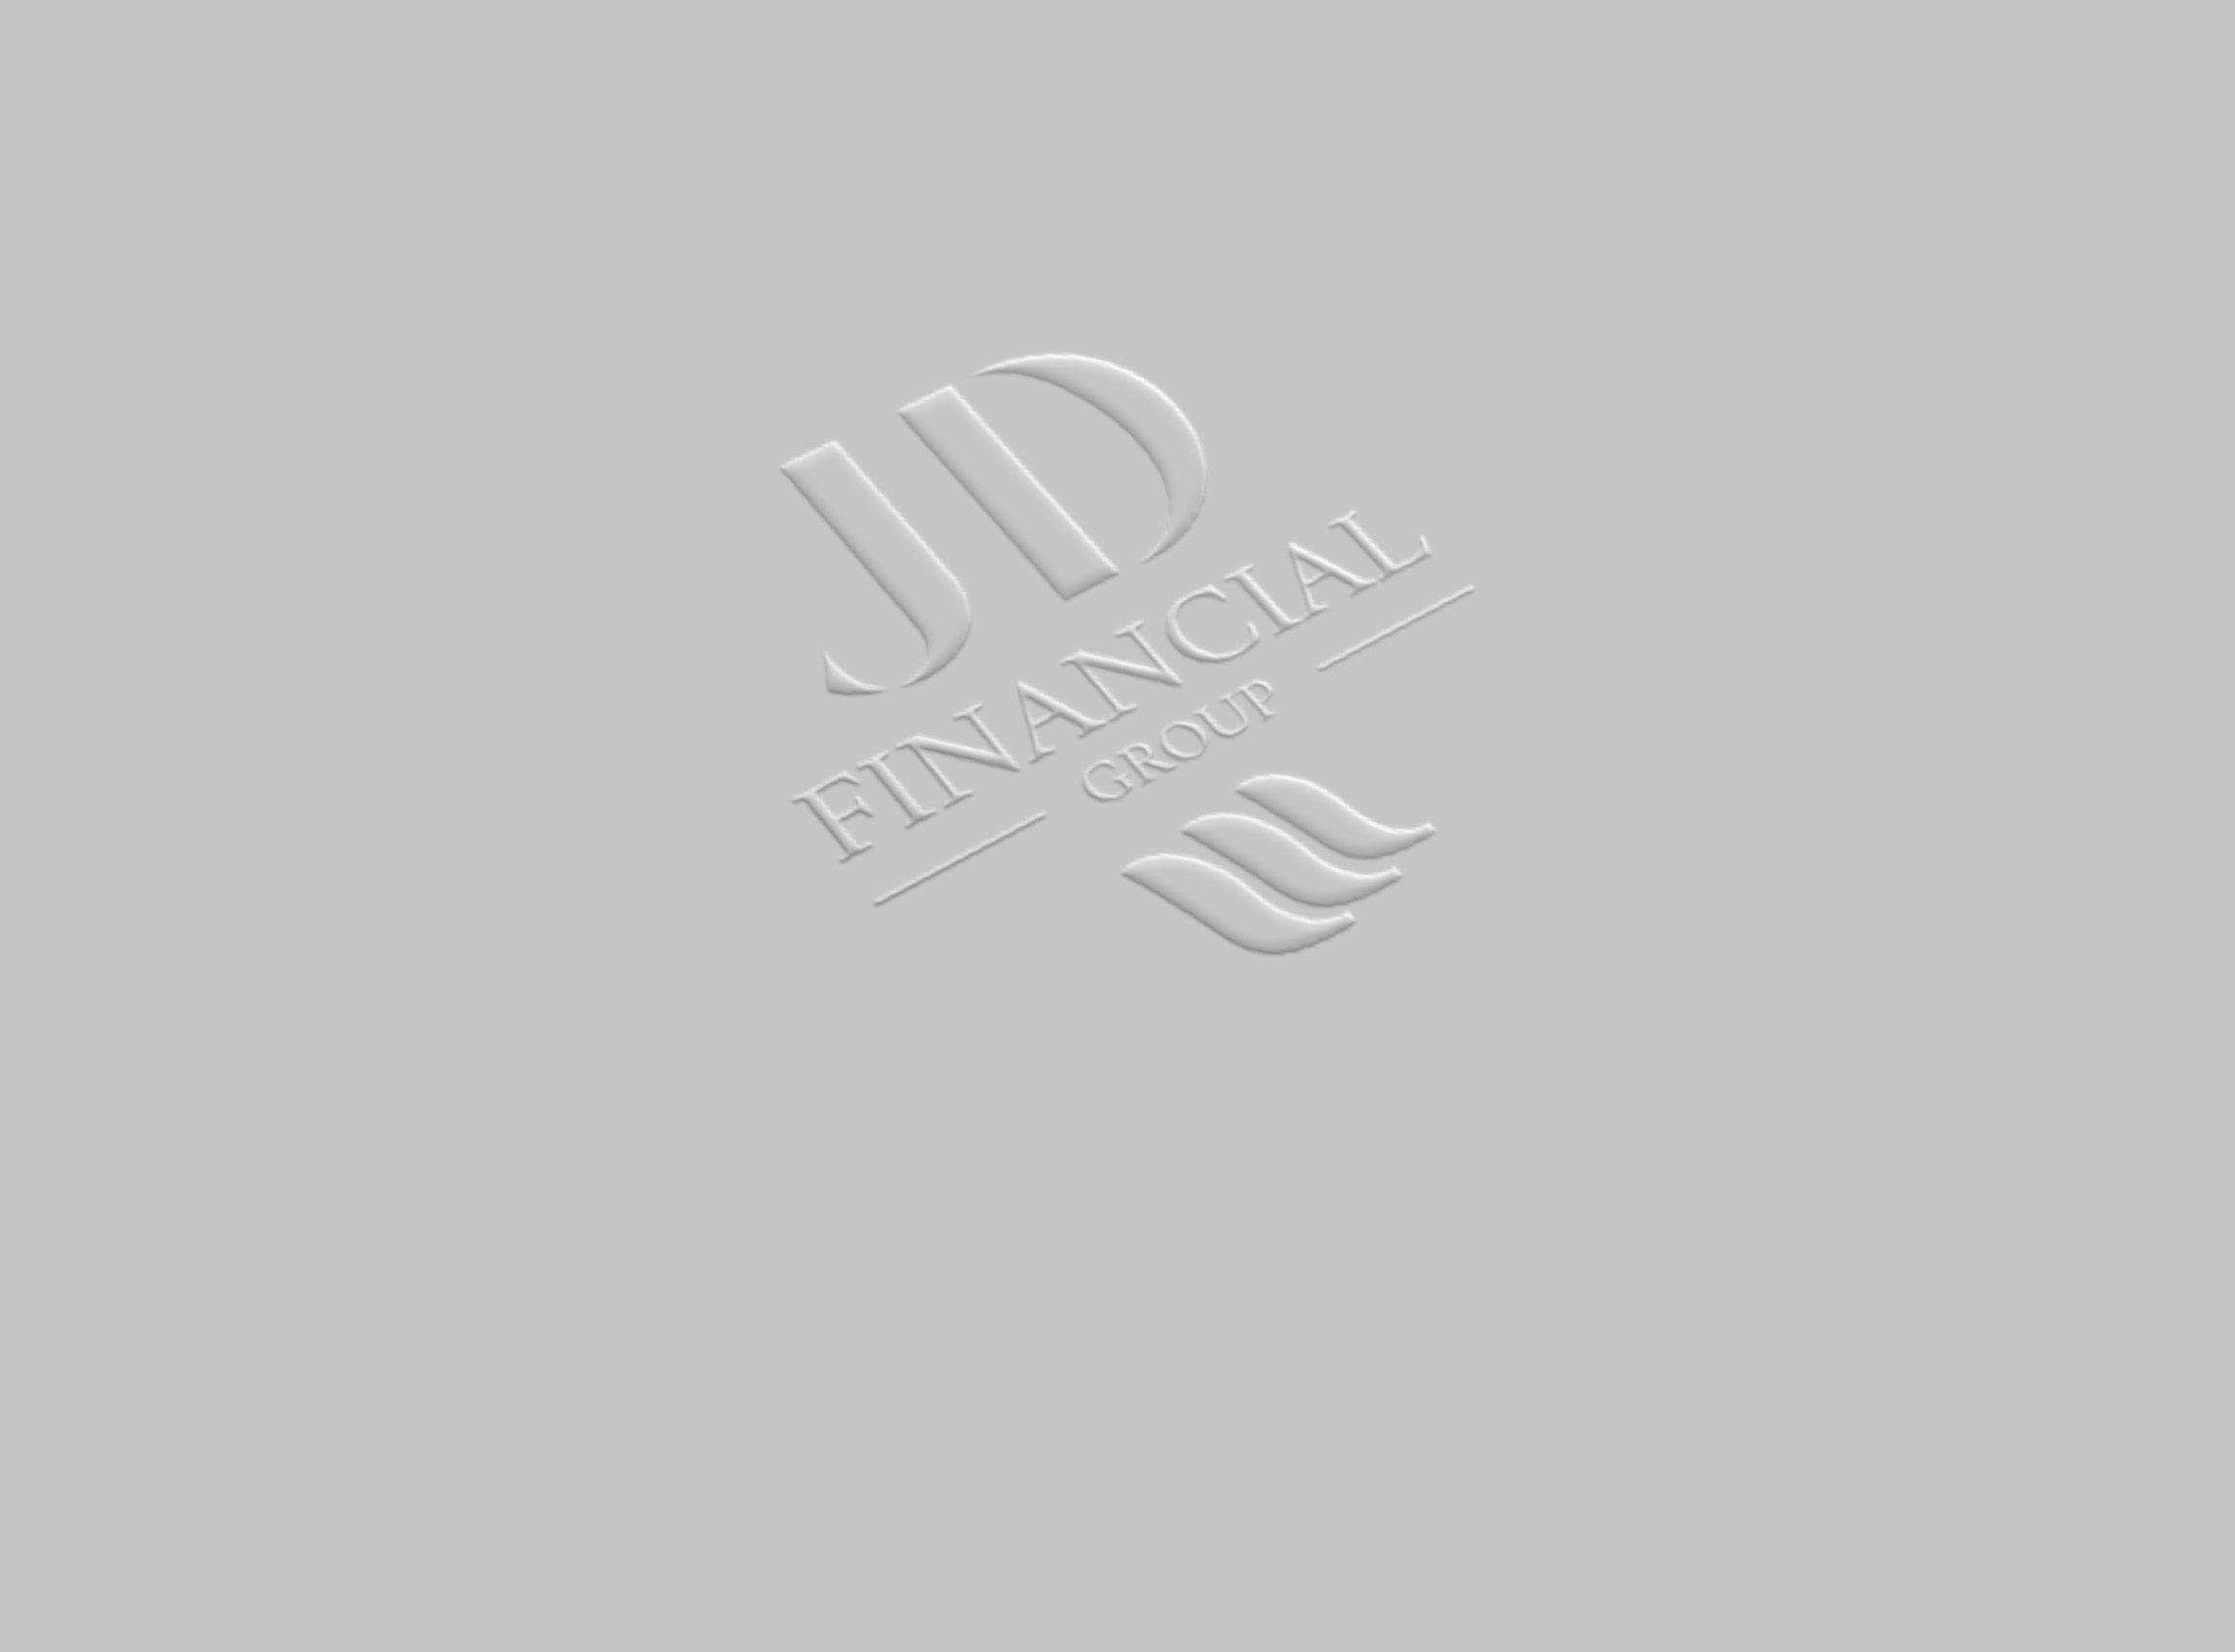 JD-Financial-Logo-Design